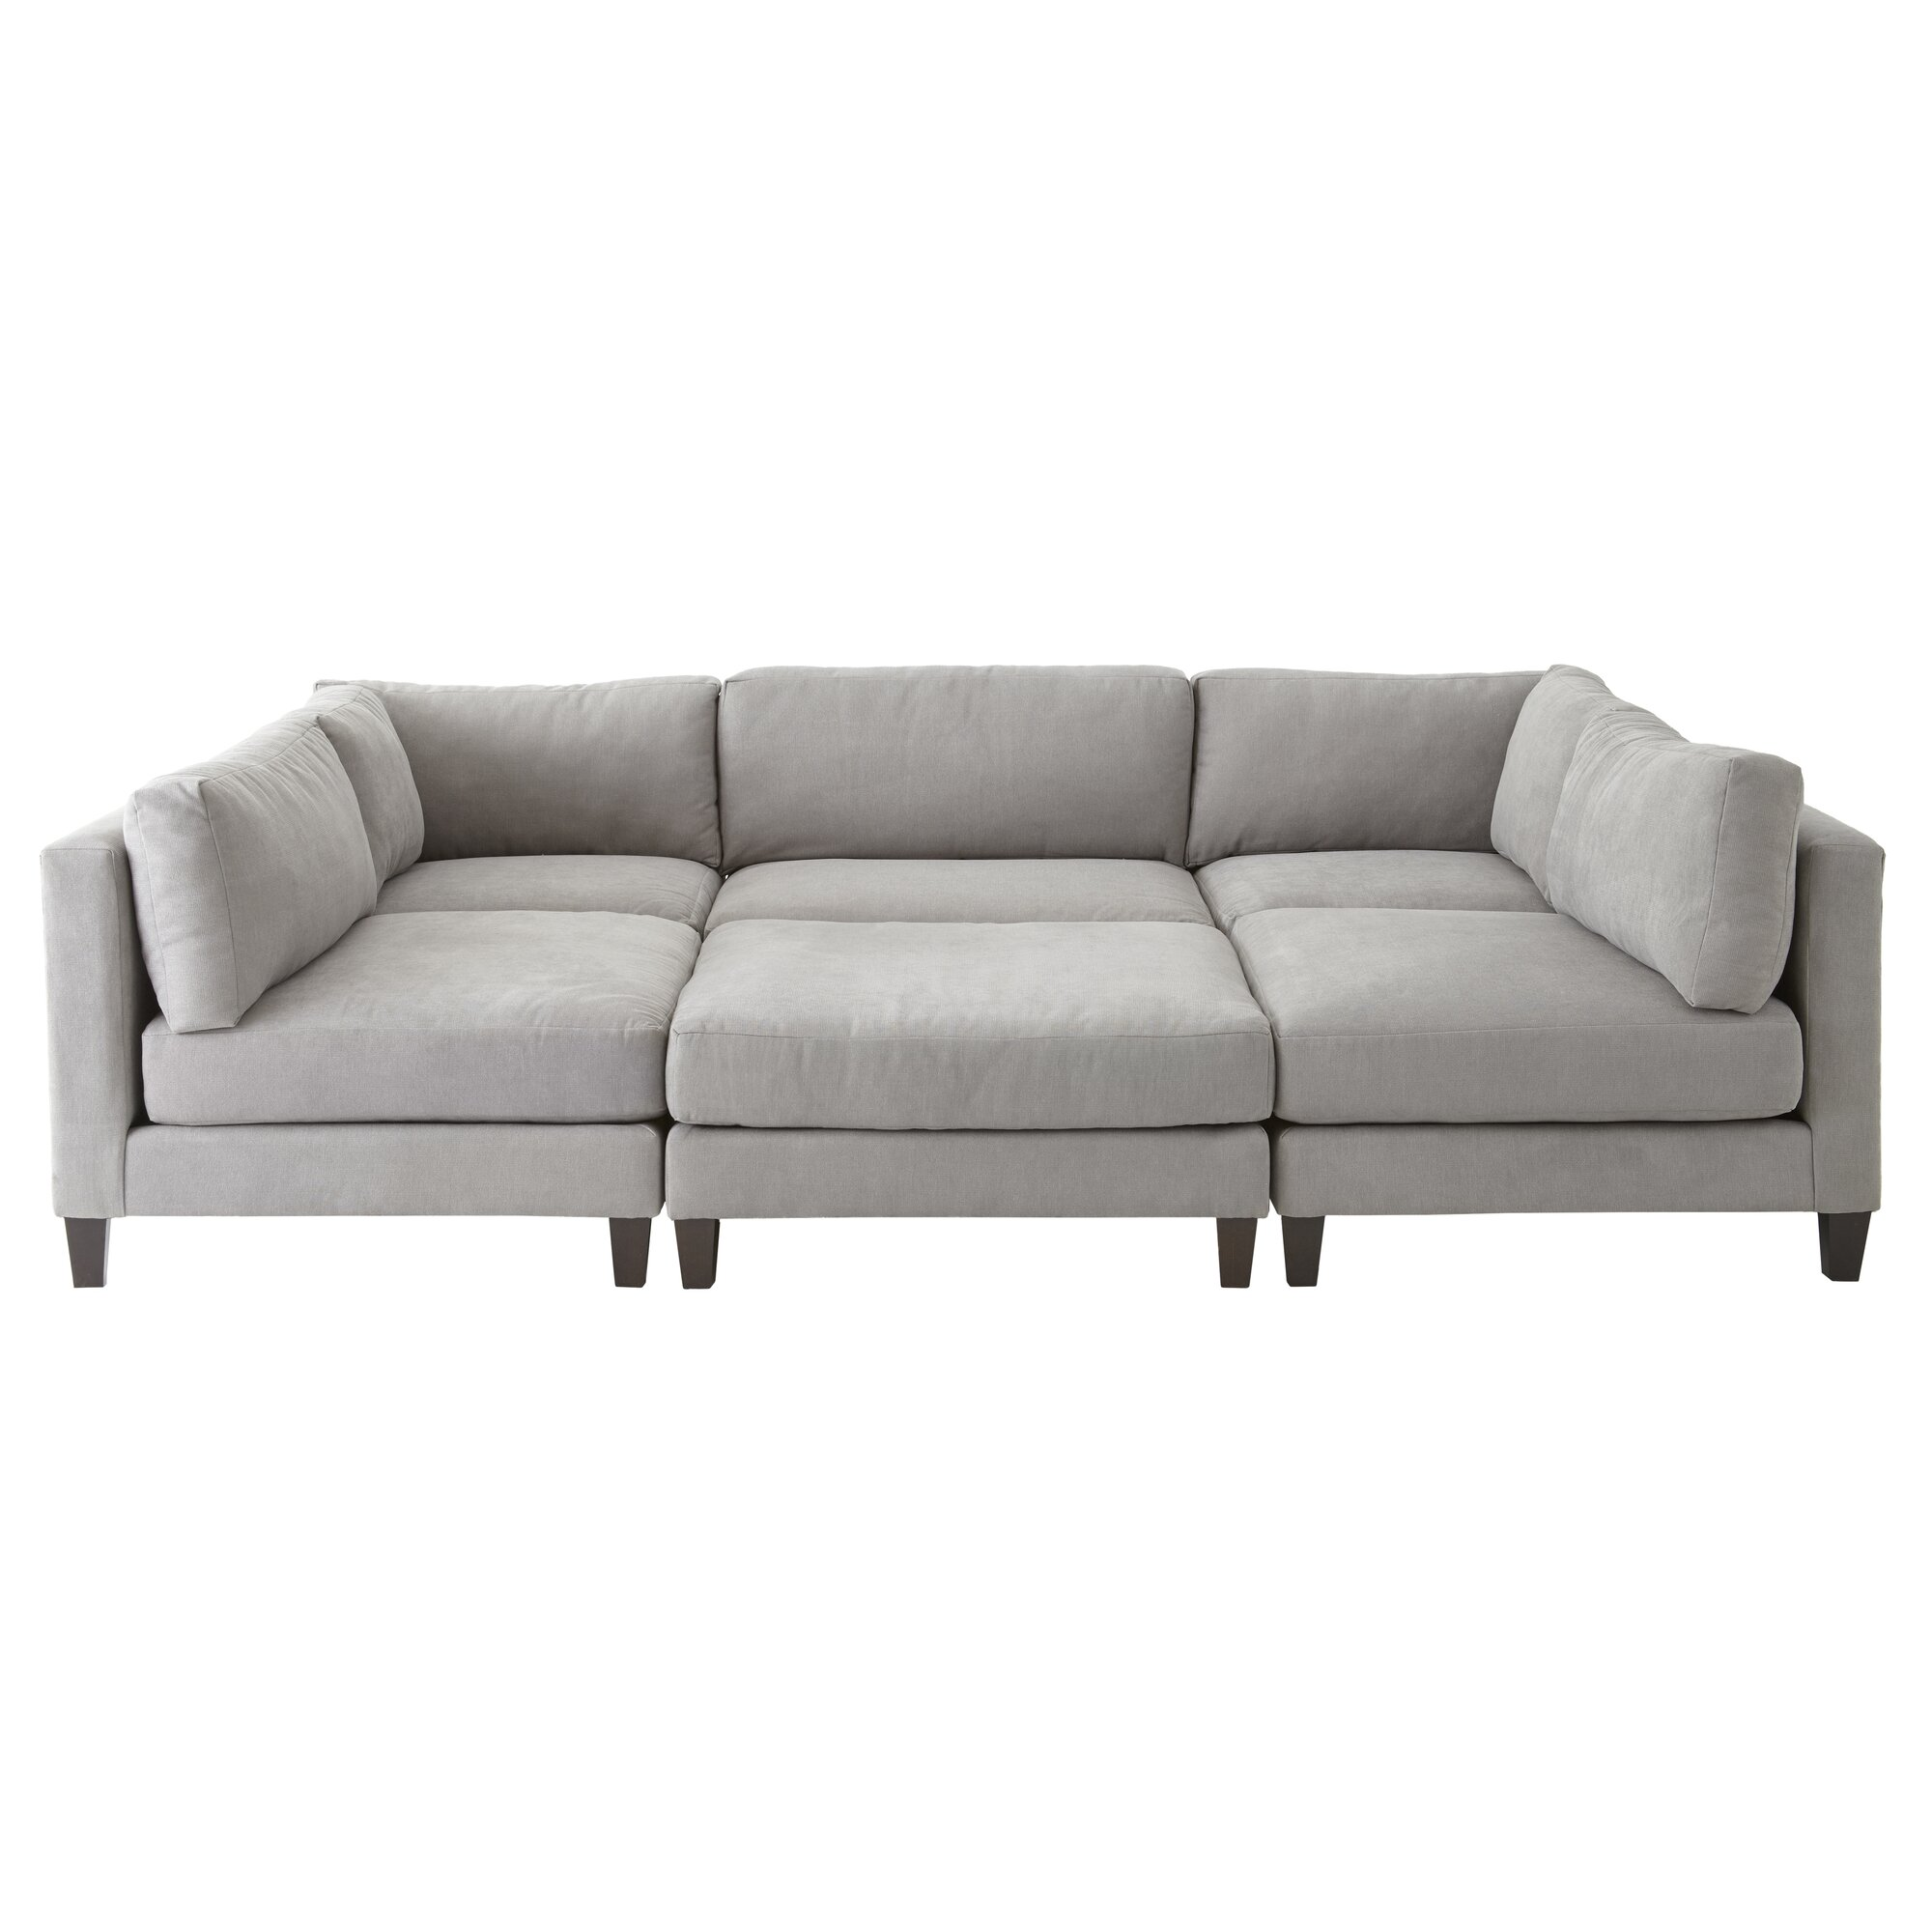 Home by Sean & Catherine Lowe Chelsea Modular Sectional & Reviews